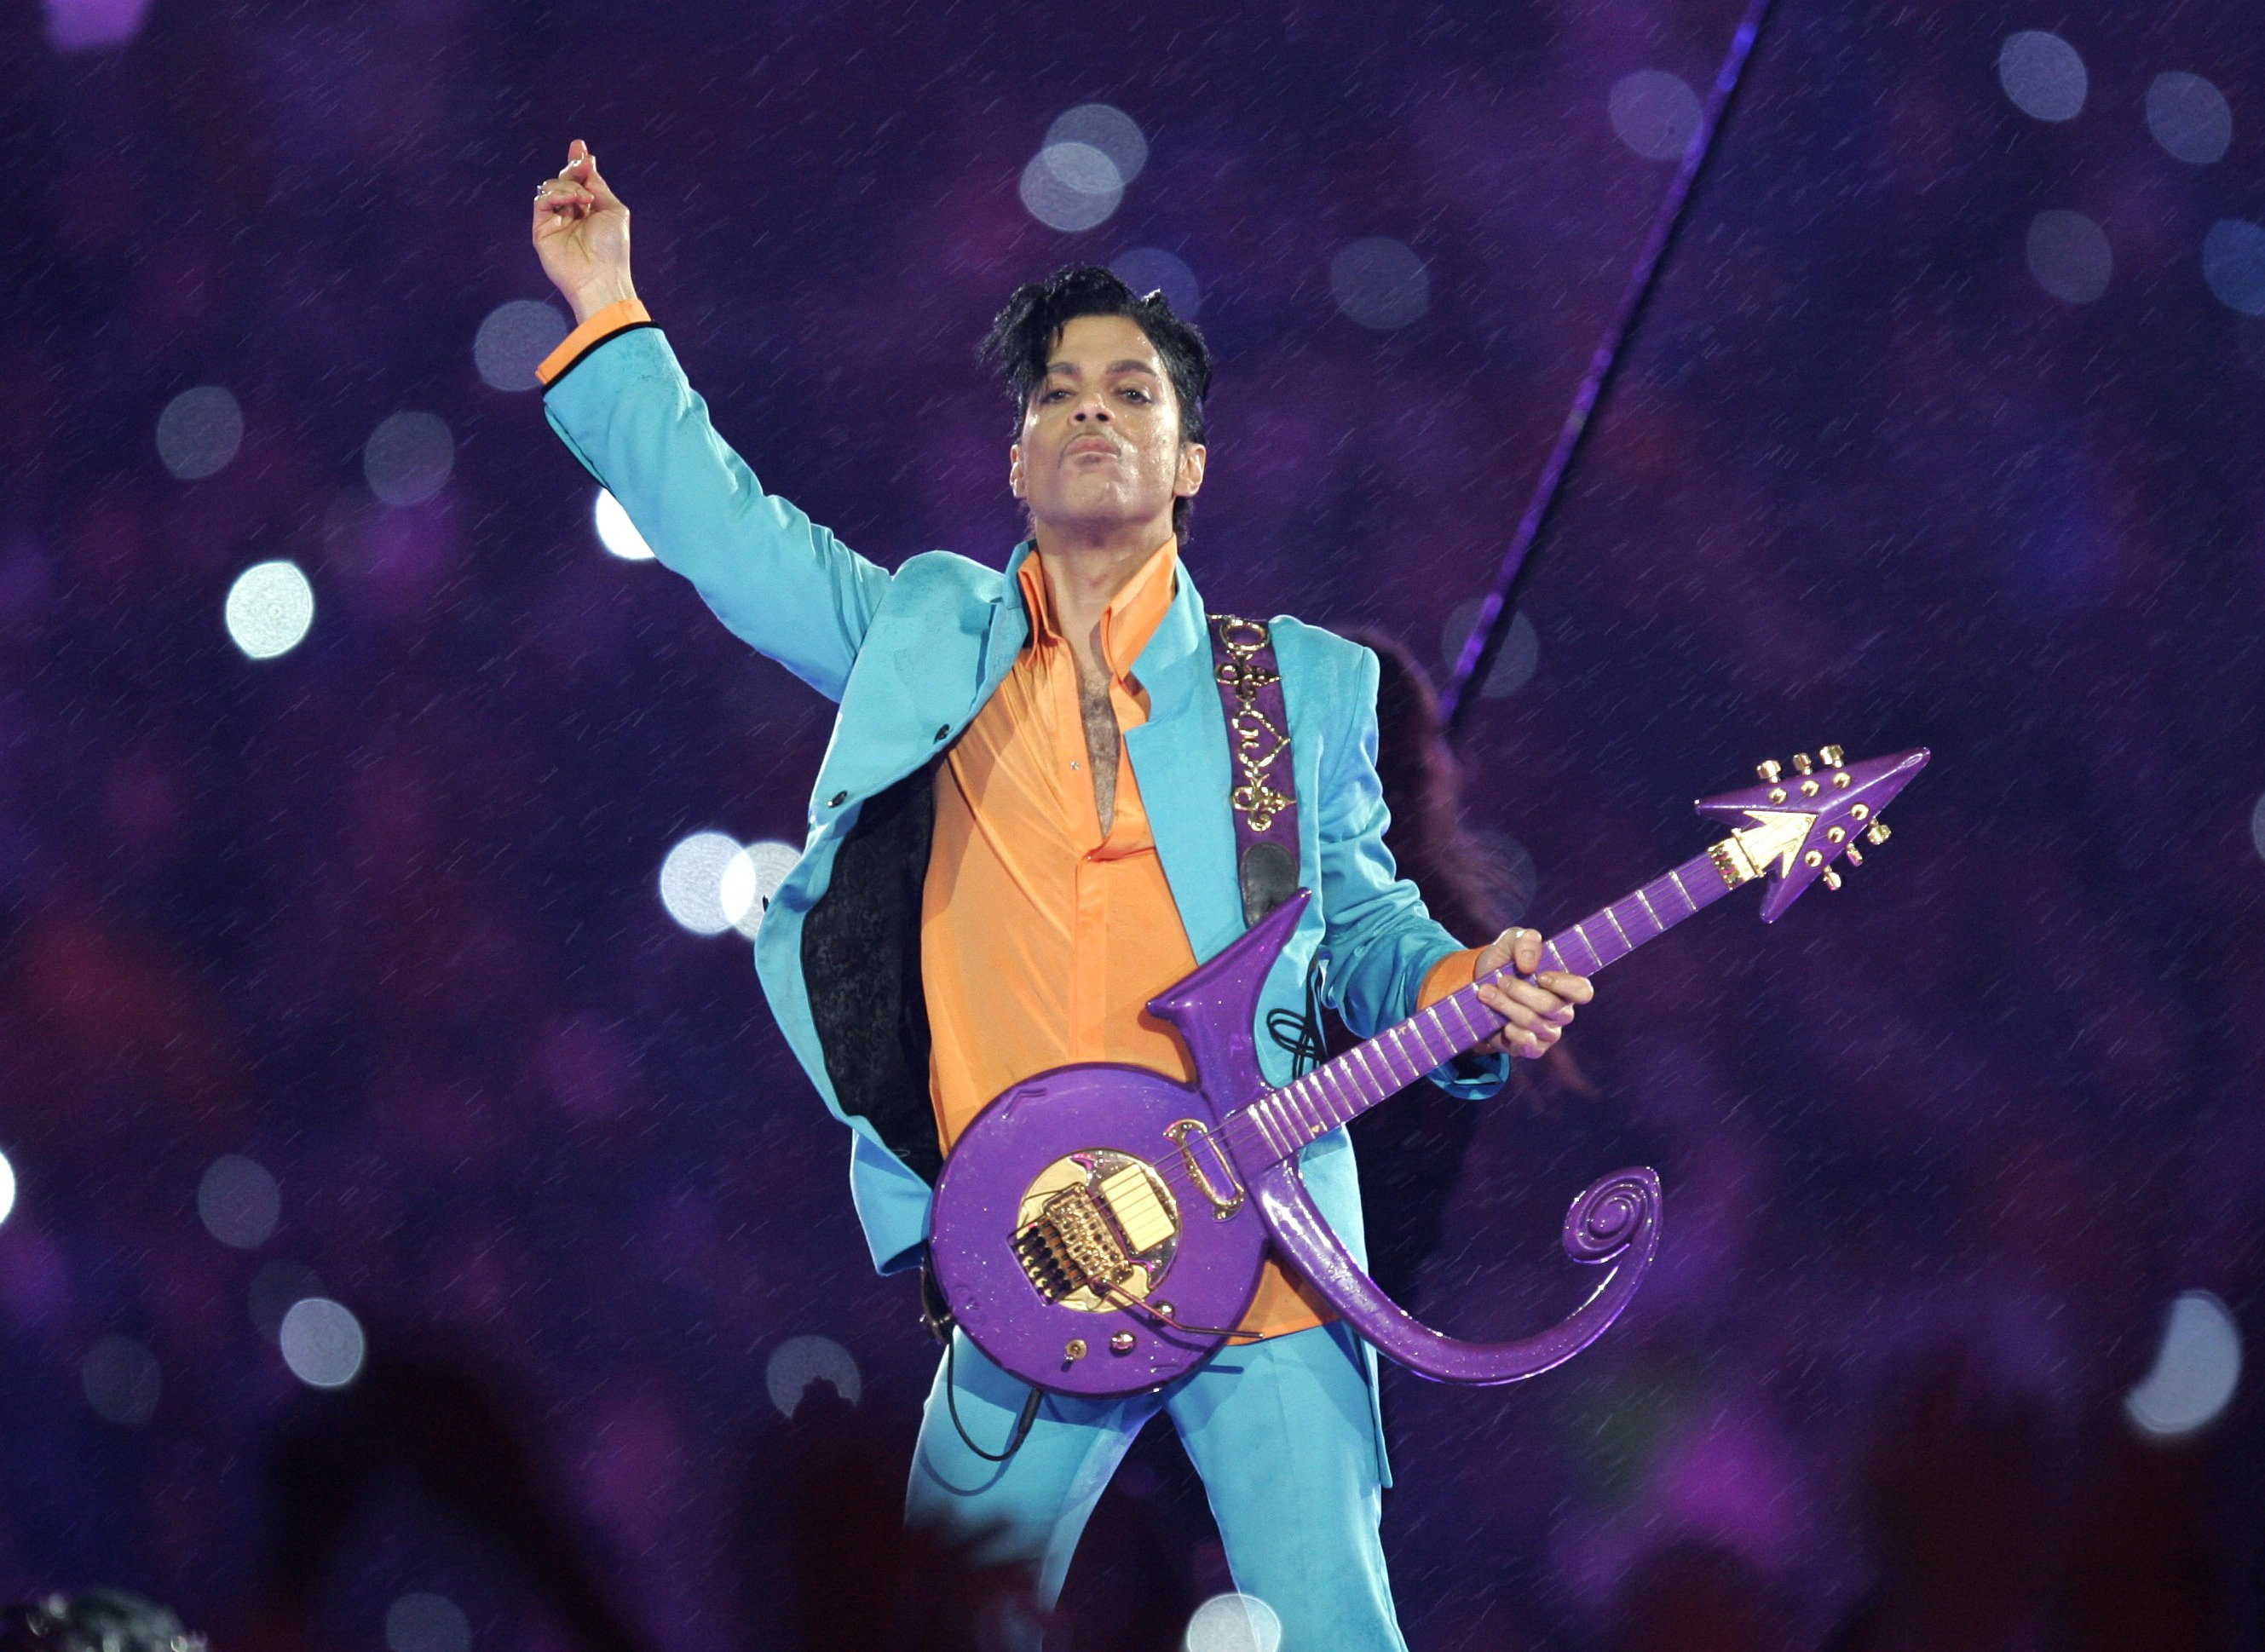 The Latest: Fentanyl in Prince's body was exceedingly high